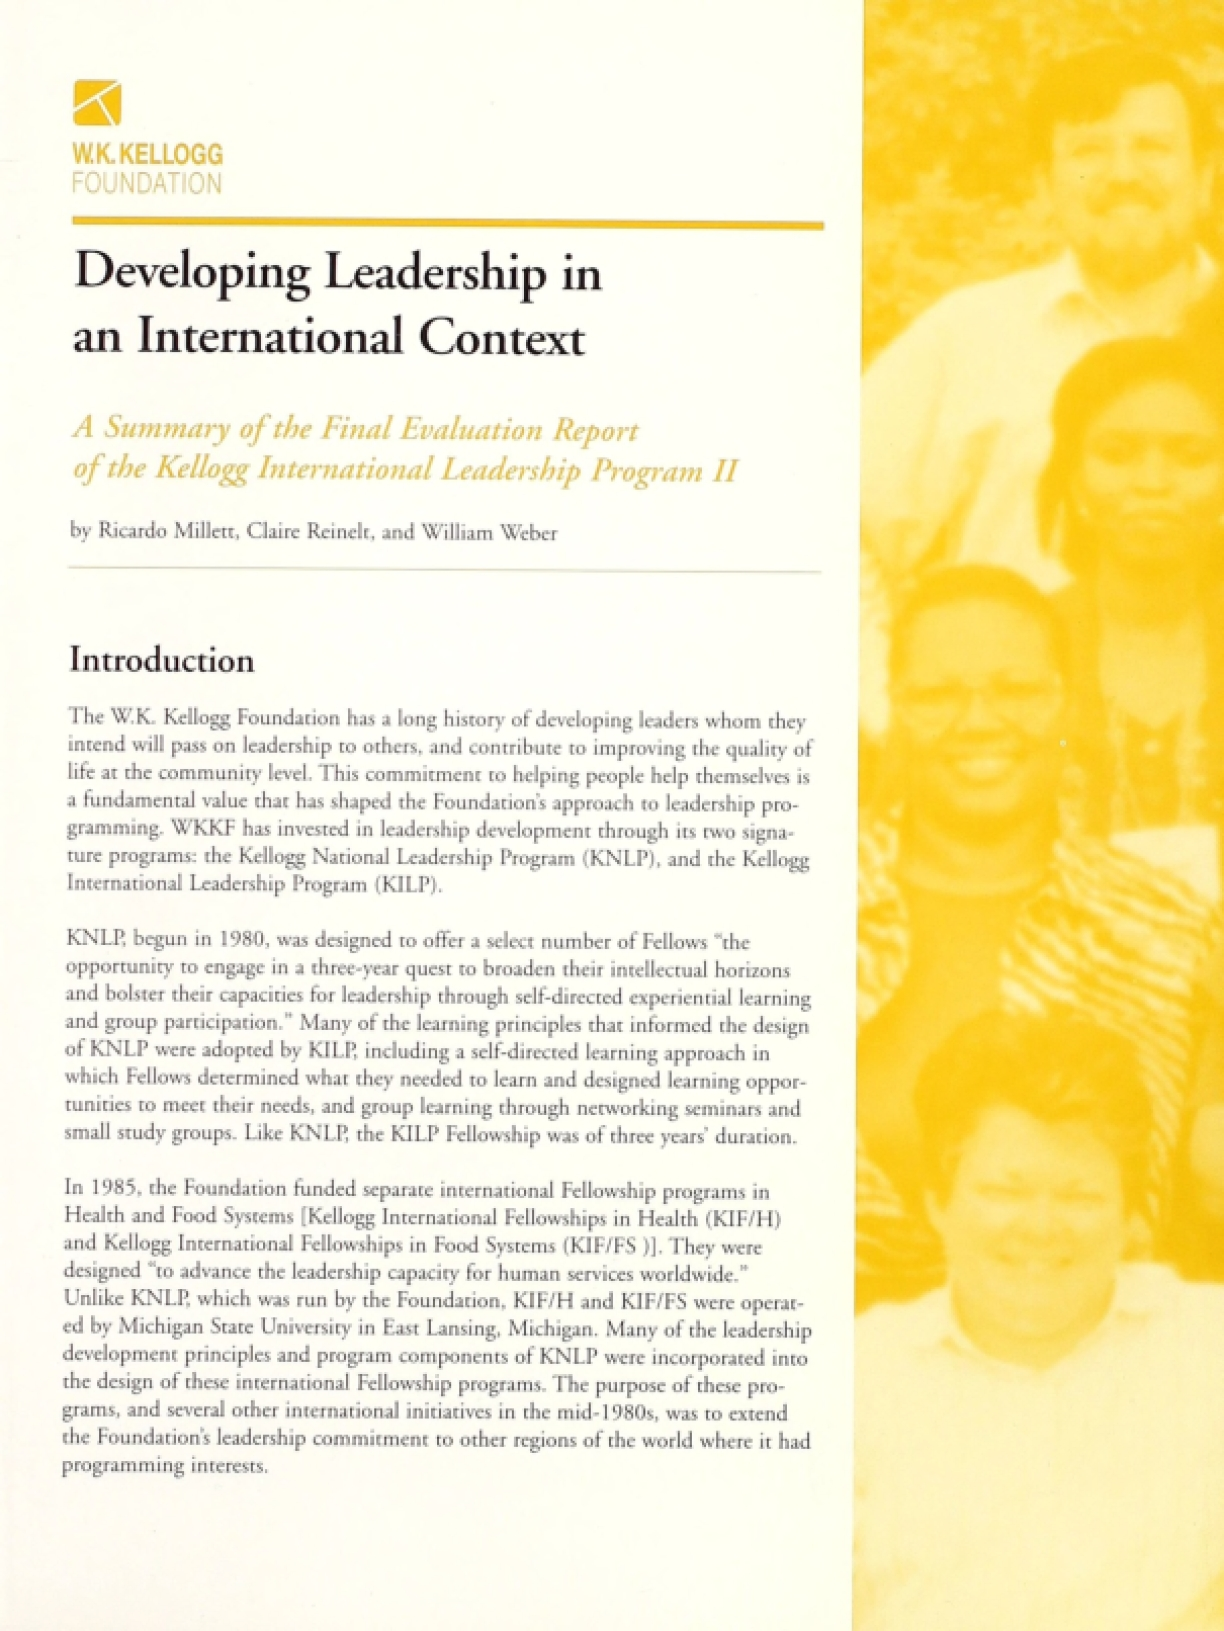 Developing Leadership in an International Context: A Summary of the Final Evaluation Report of the Kellogg International Leadership Program II